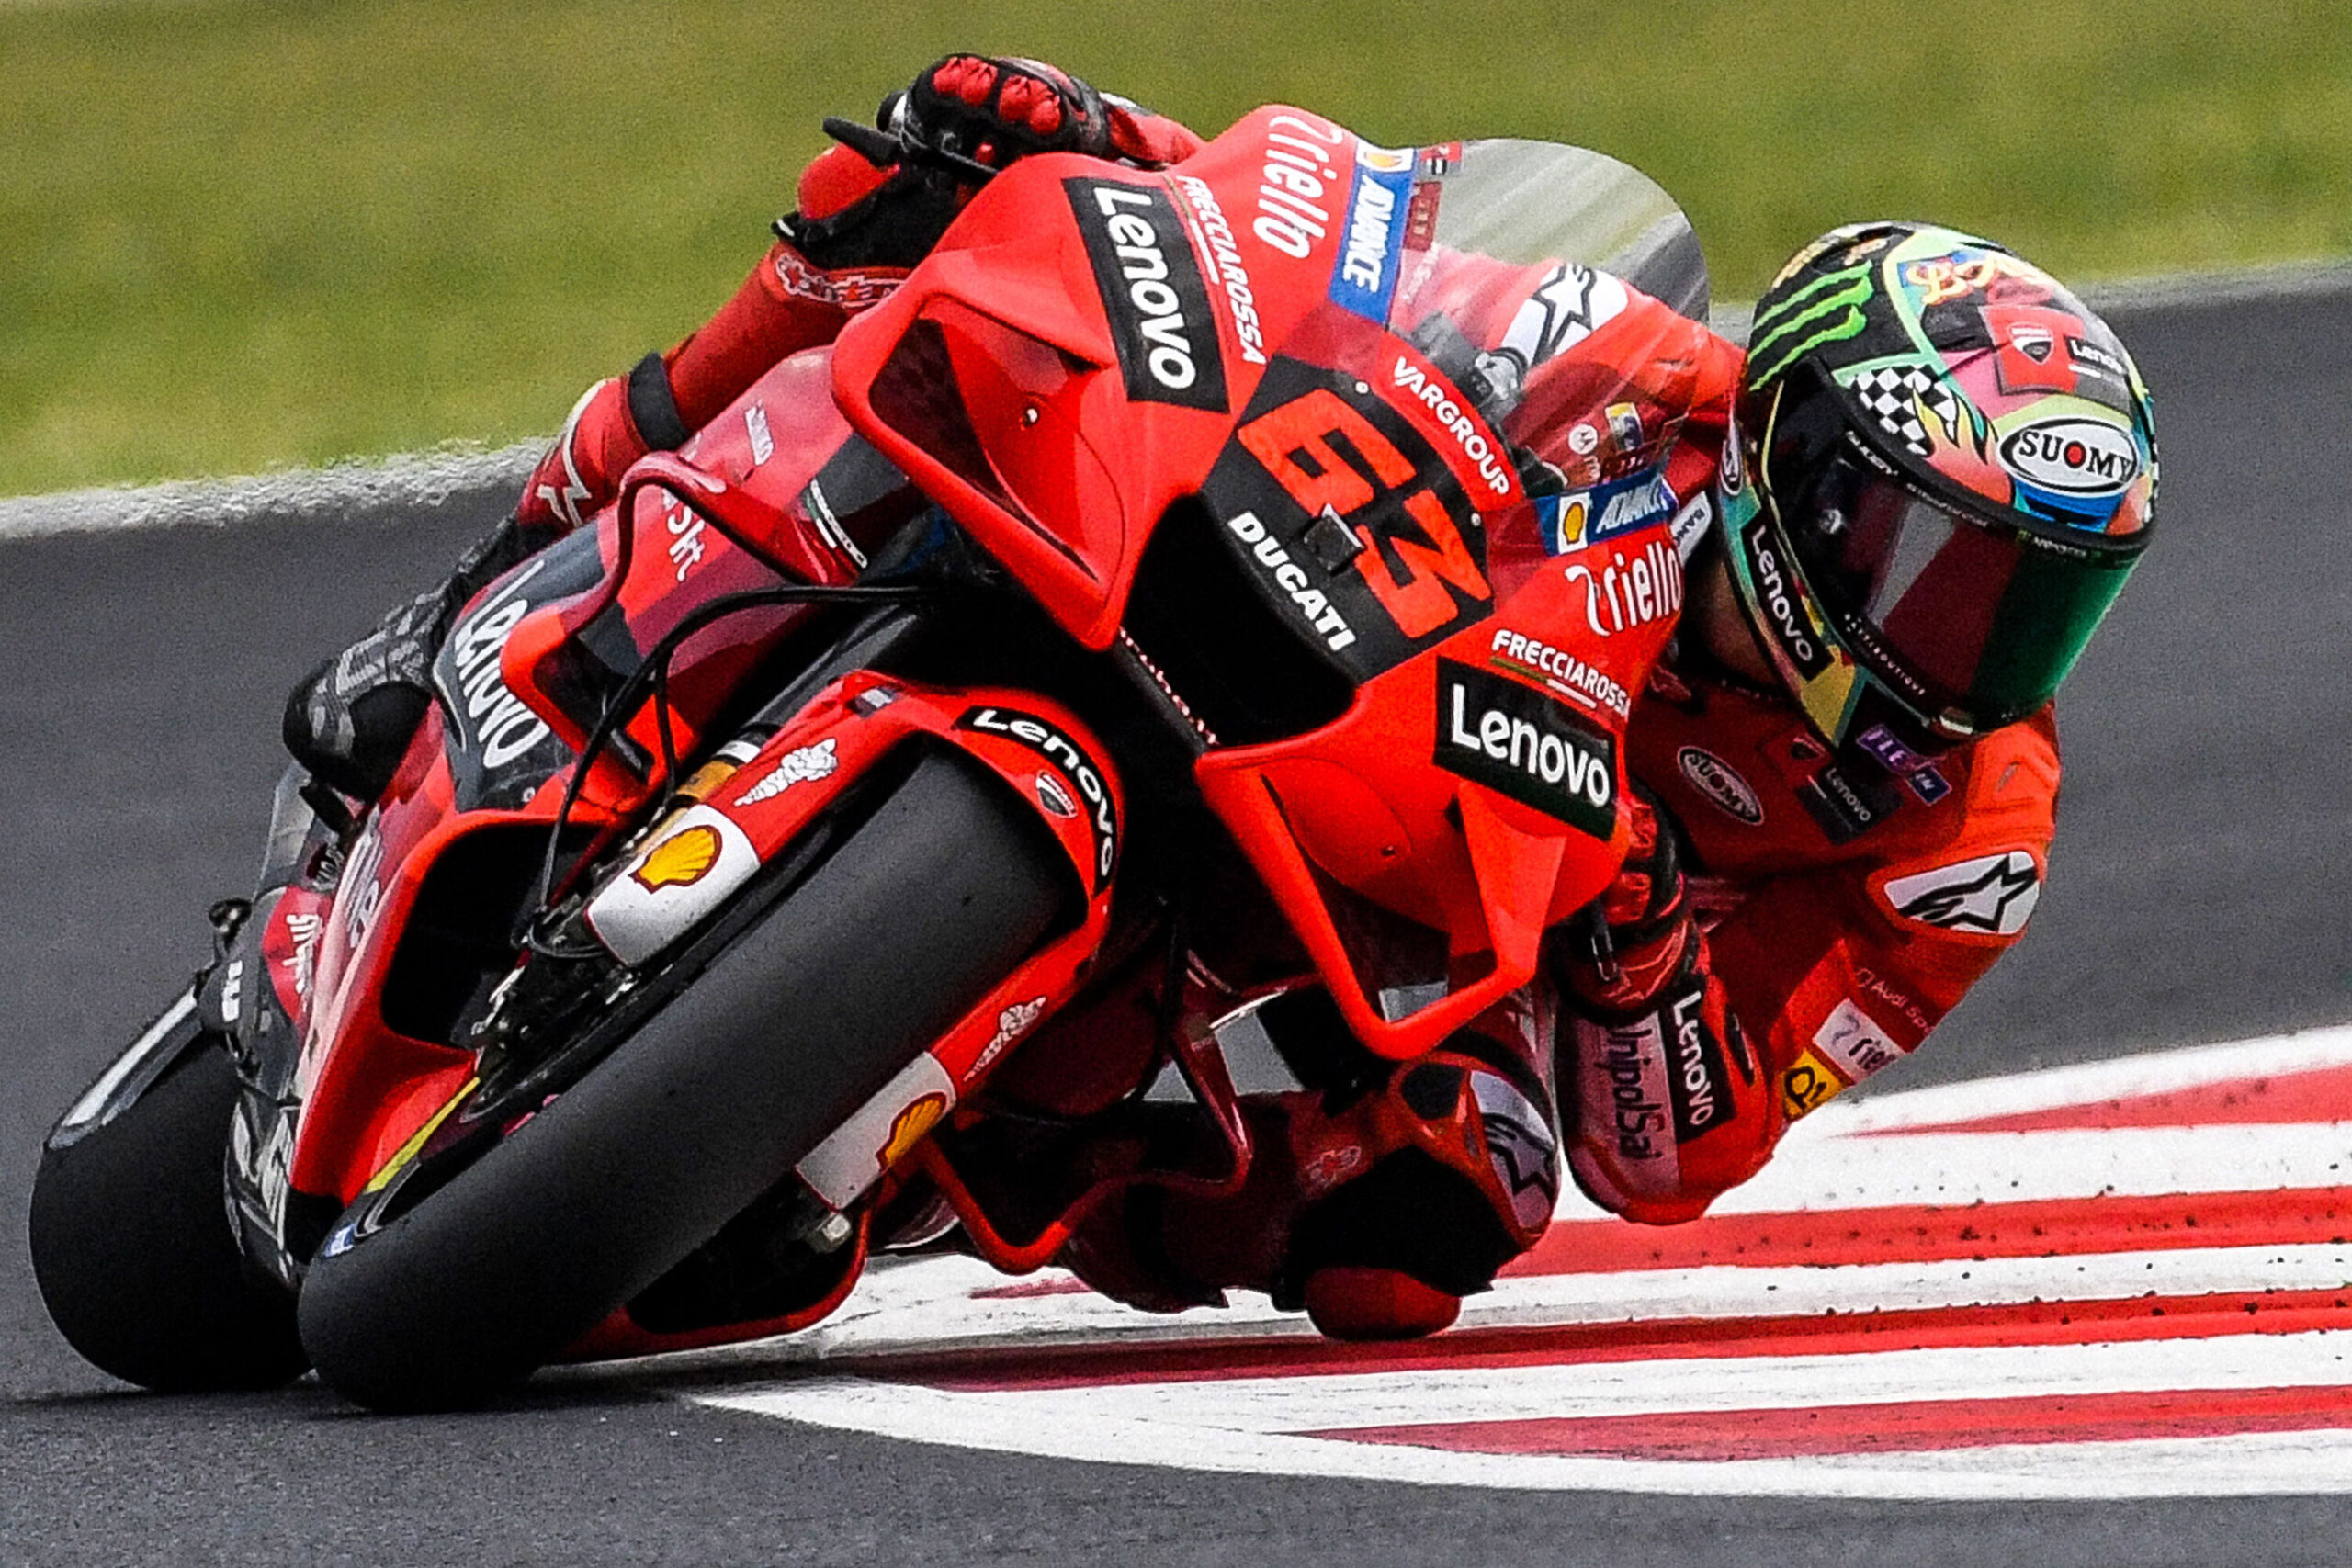 <i>Andreas Solaro/AFP/Getty Images</i><br/>Bagnaia competes during the San Marino MotoGP Grand Prix at the Misano World Circuit Marco-Simoncelli on September 19